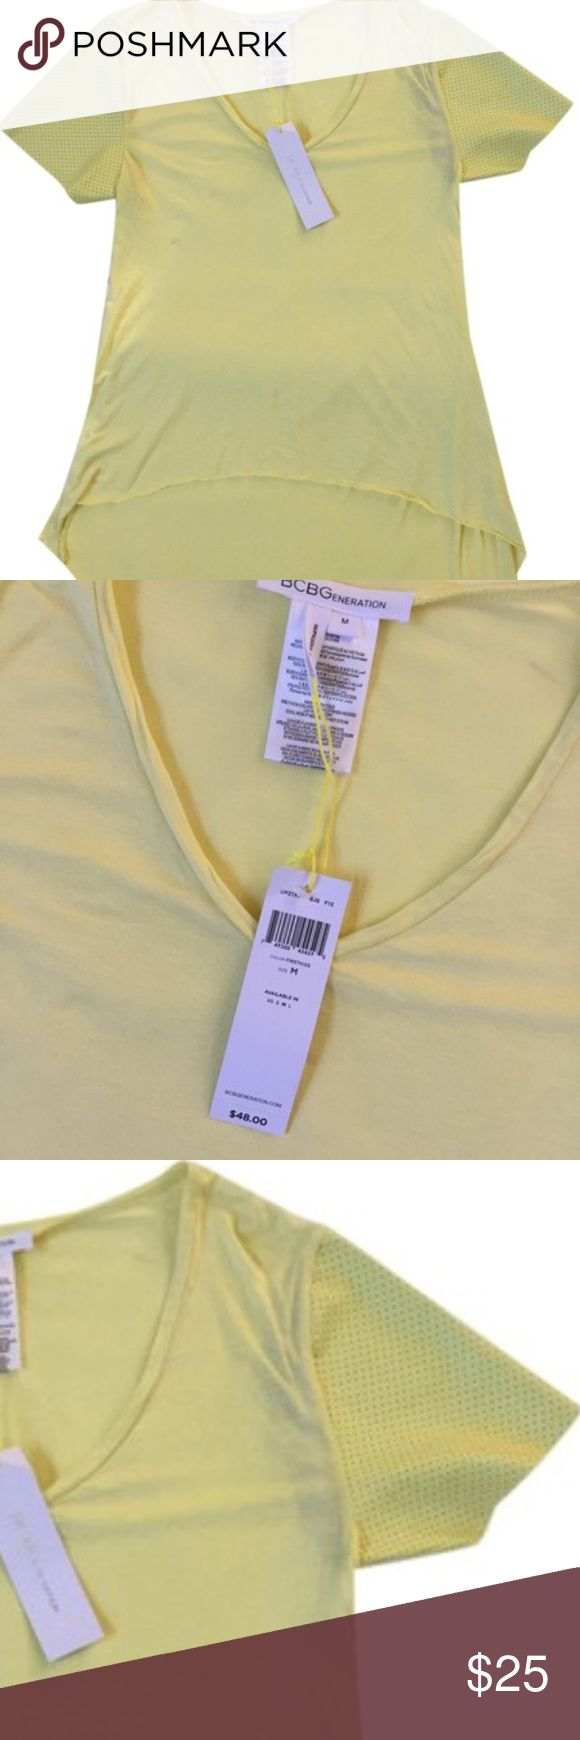 BCBGeneration shirt BCBGeneration yellow v-neck high-low shirt with detail sleeves. BCBGeneration Tops Tees - Short Sleeve